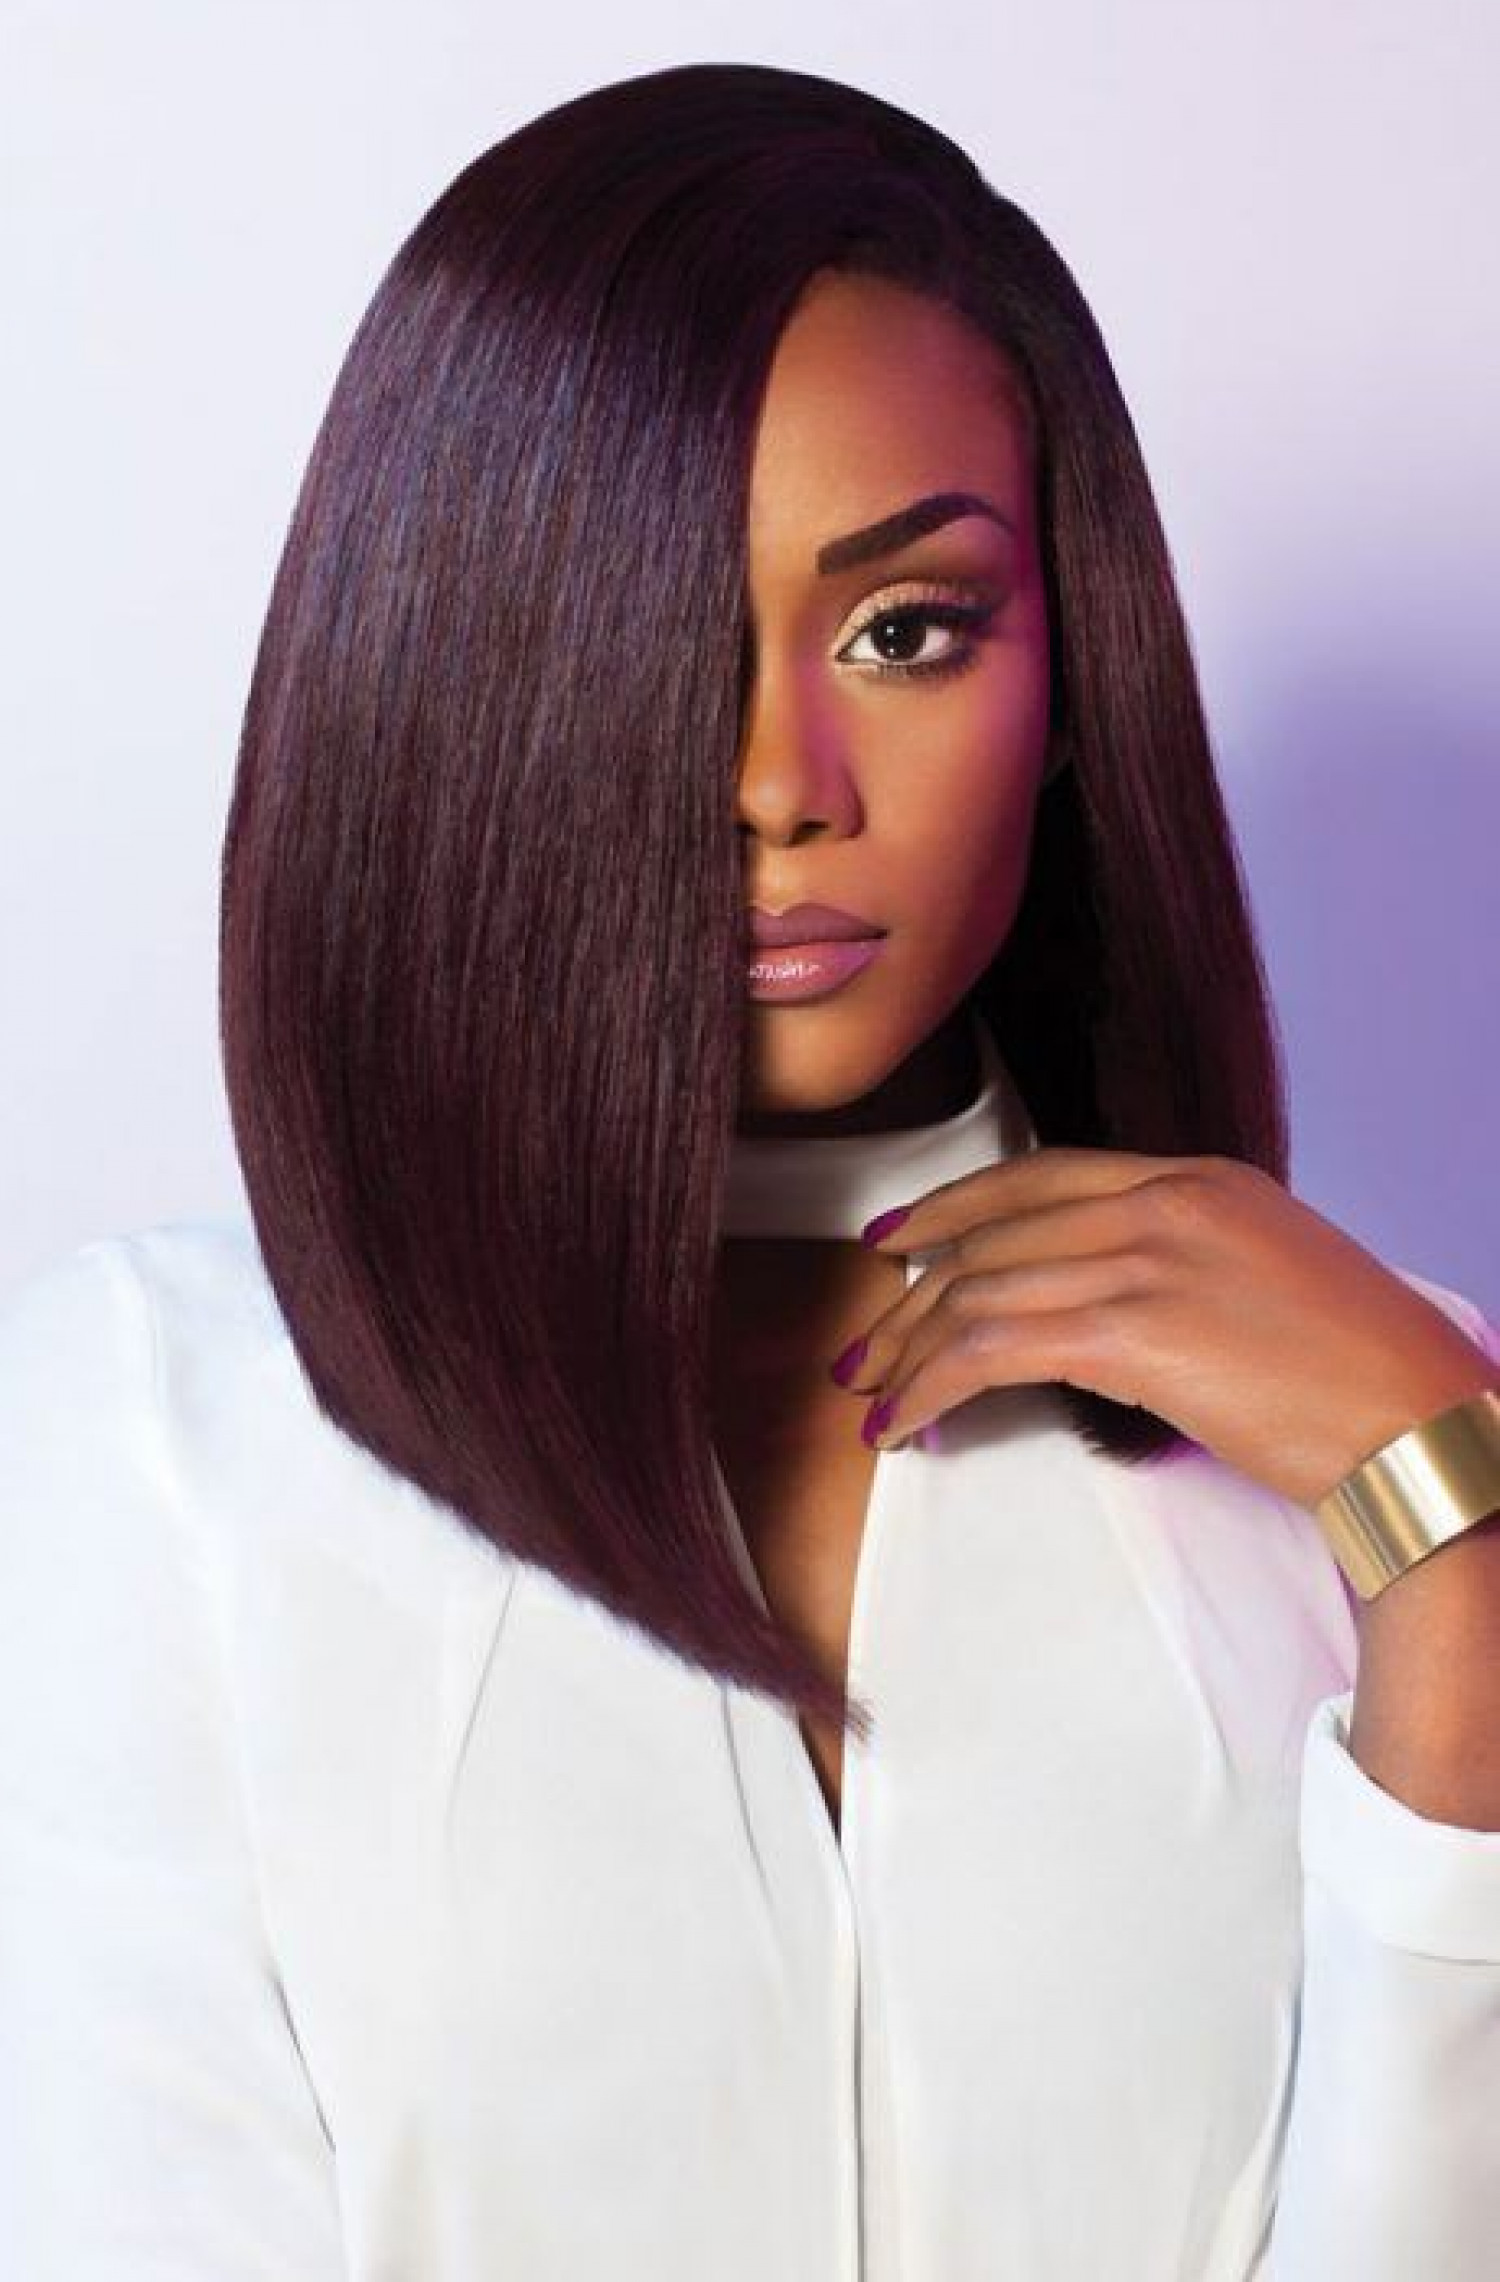 Magnificent Shoulder Length Hairstyles For Black Women Visual Ly